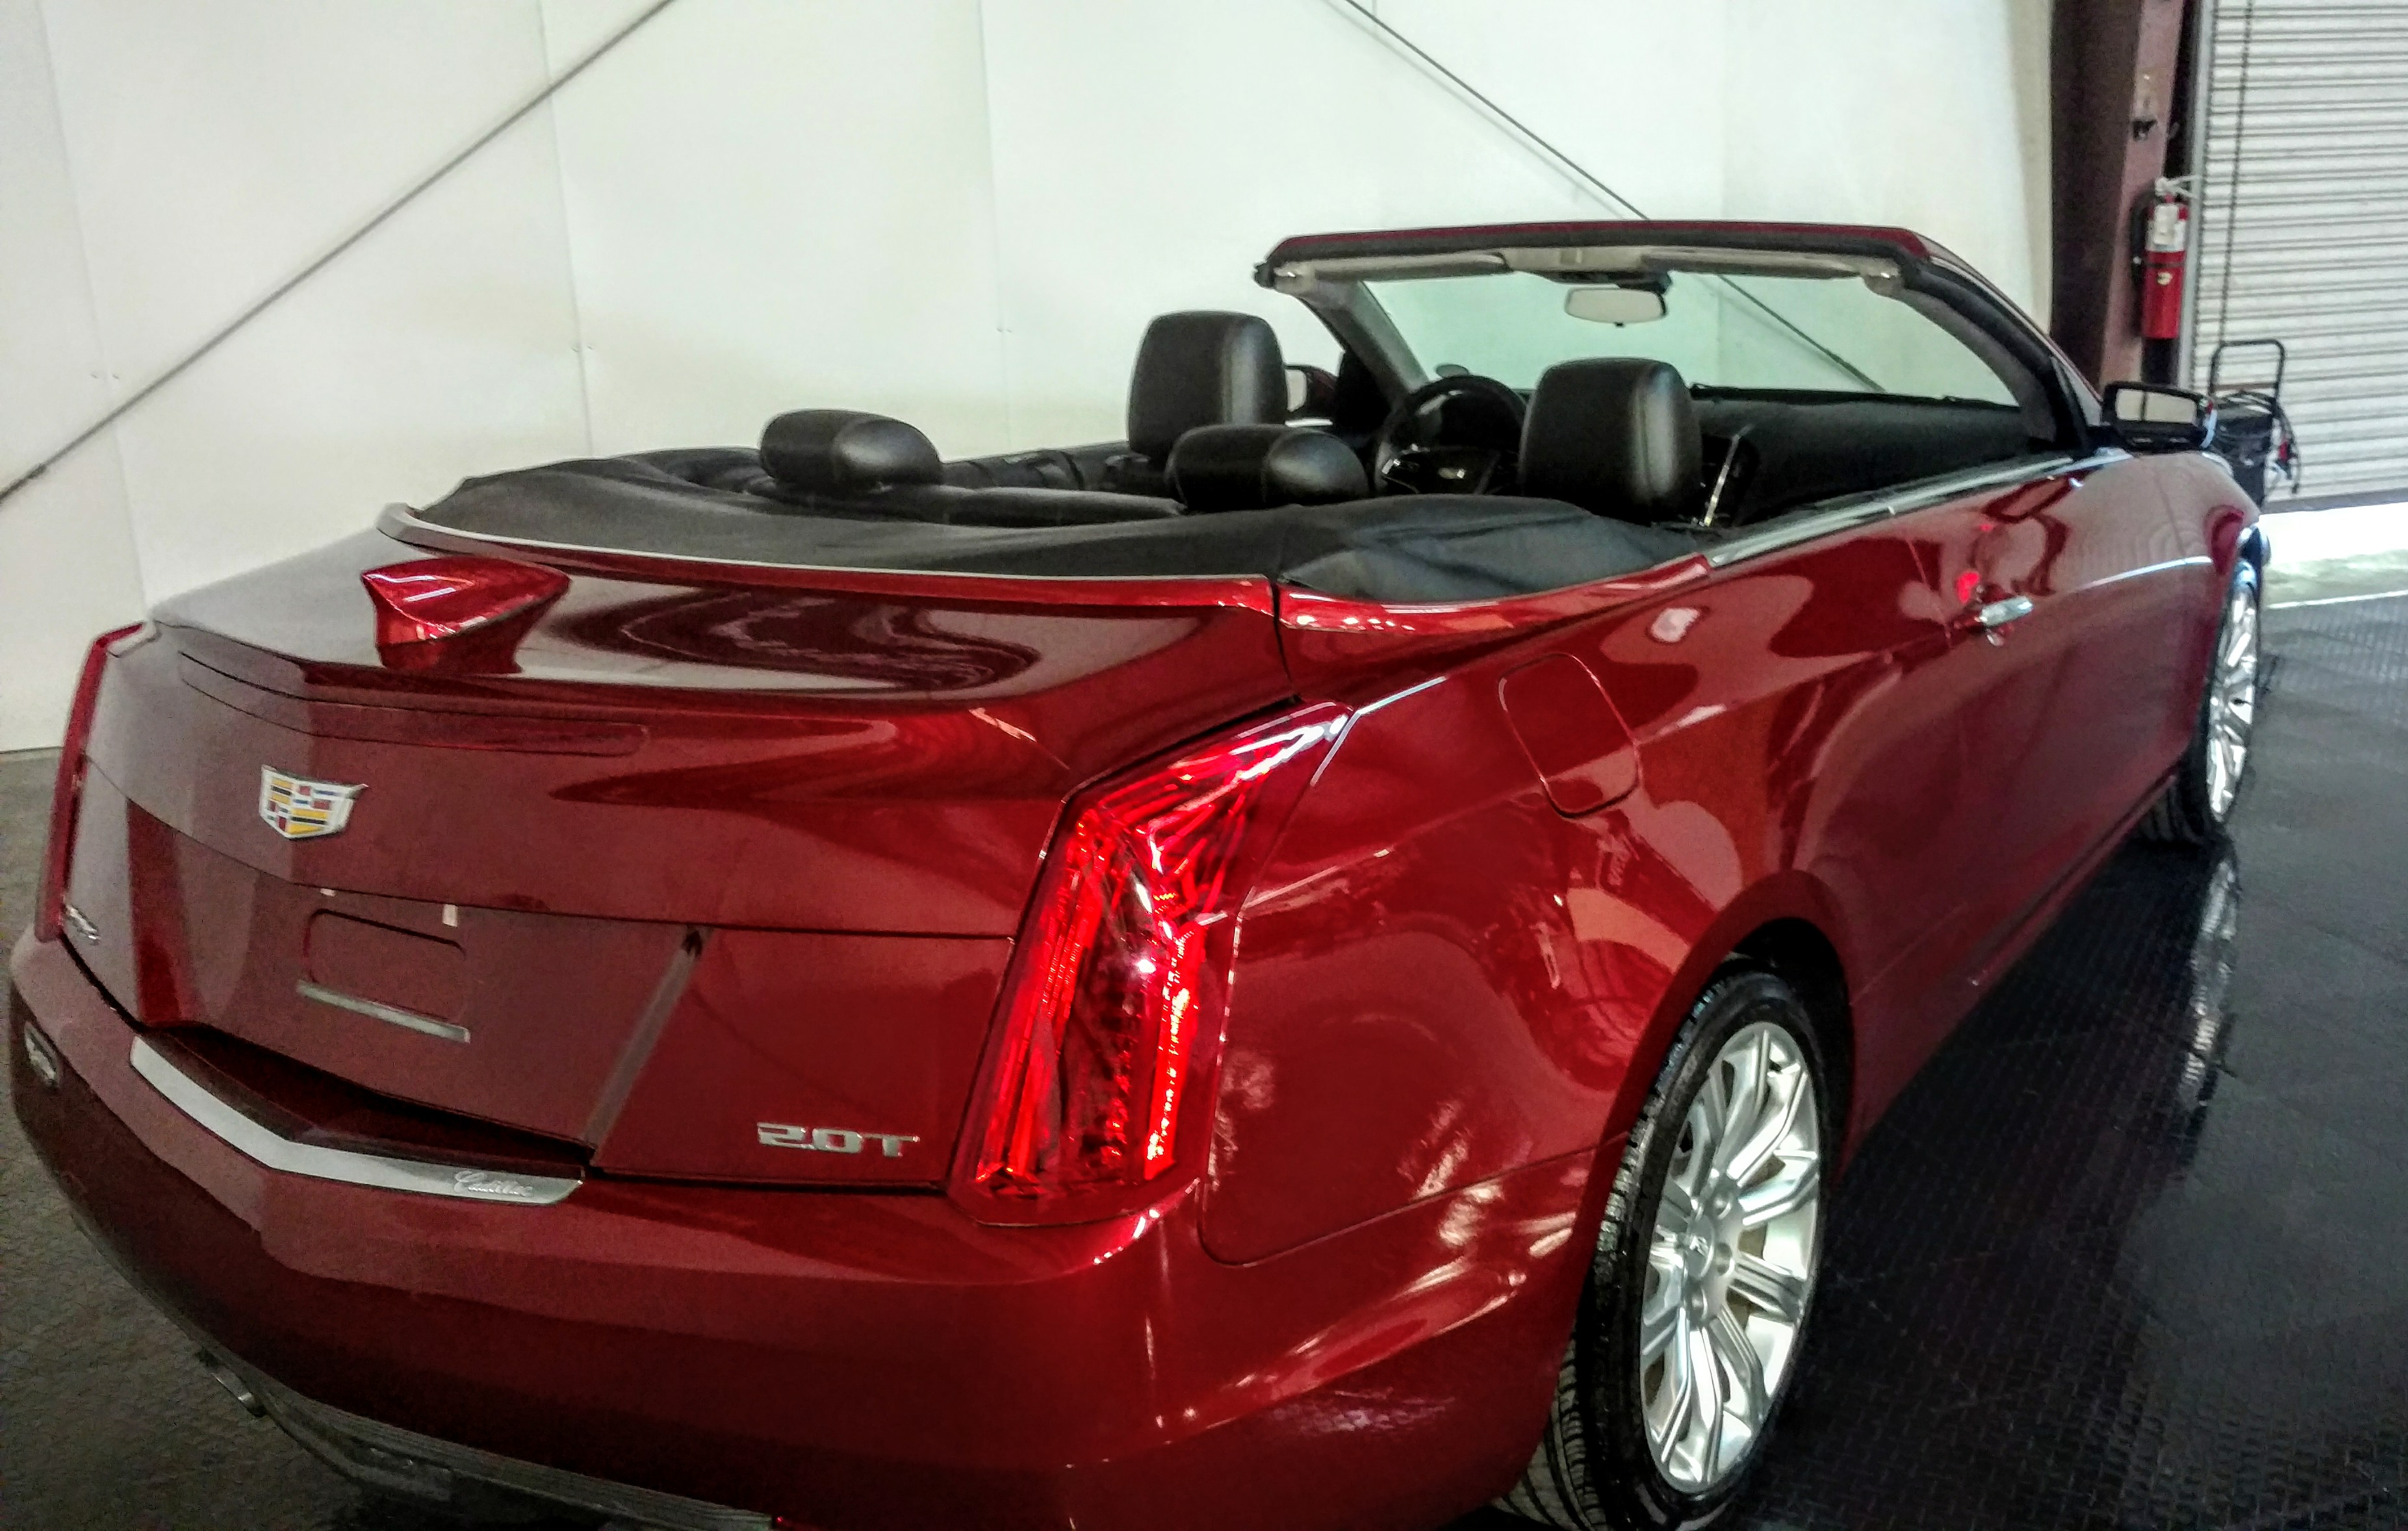 Cadillac ATS Convertible Right Rear